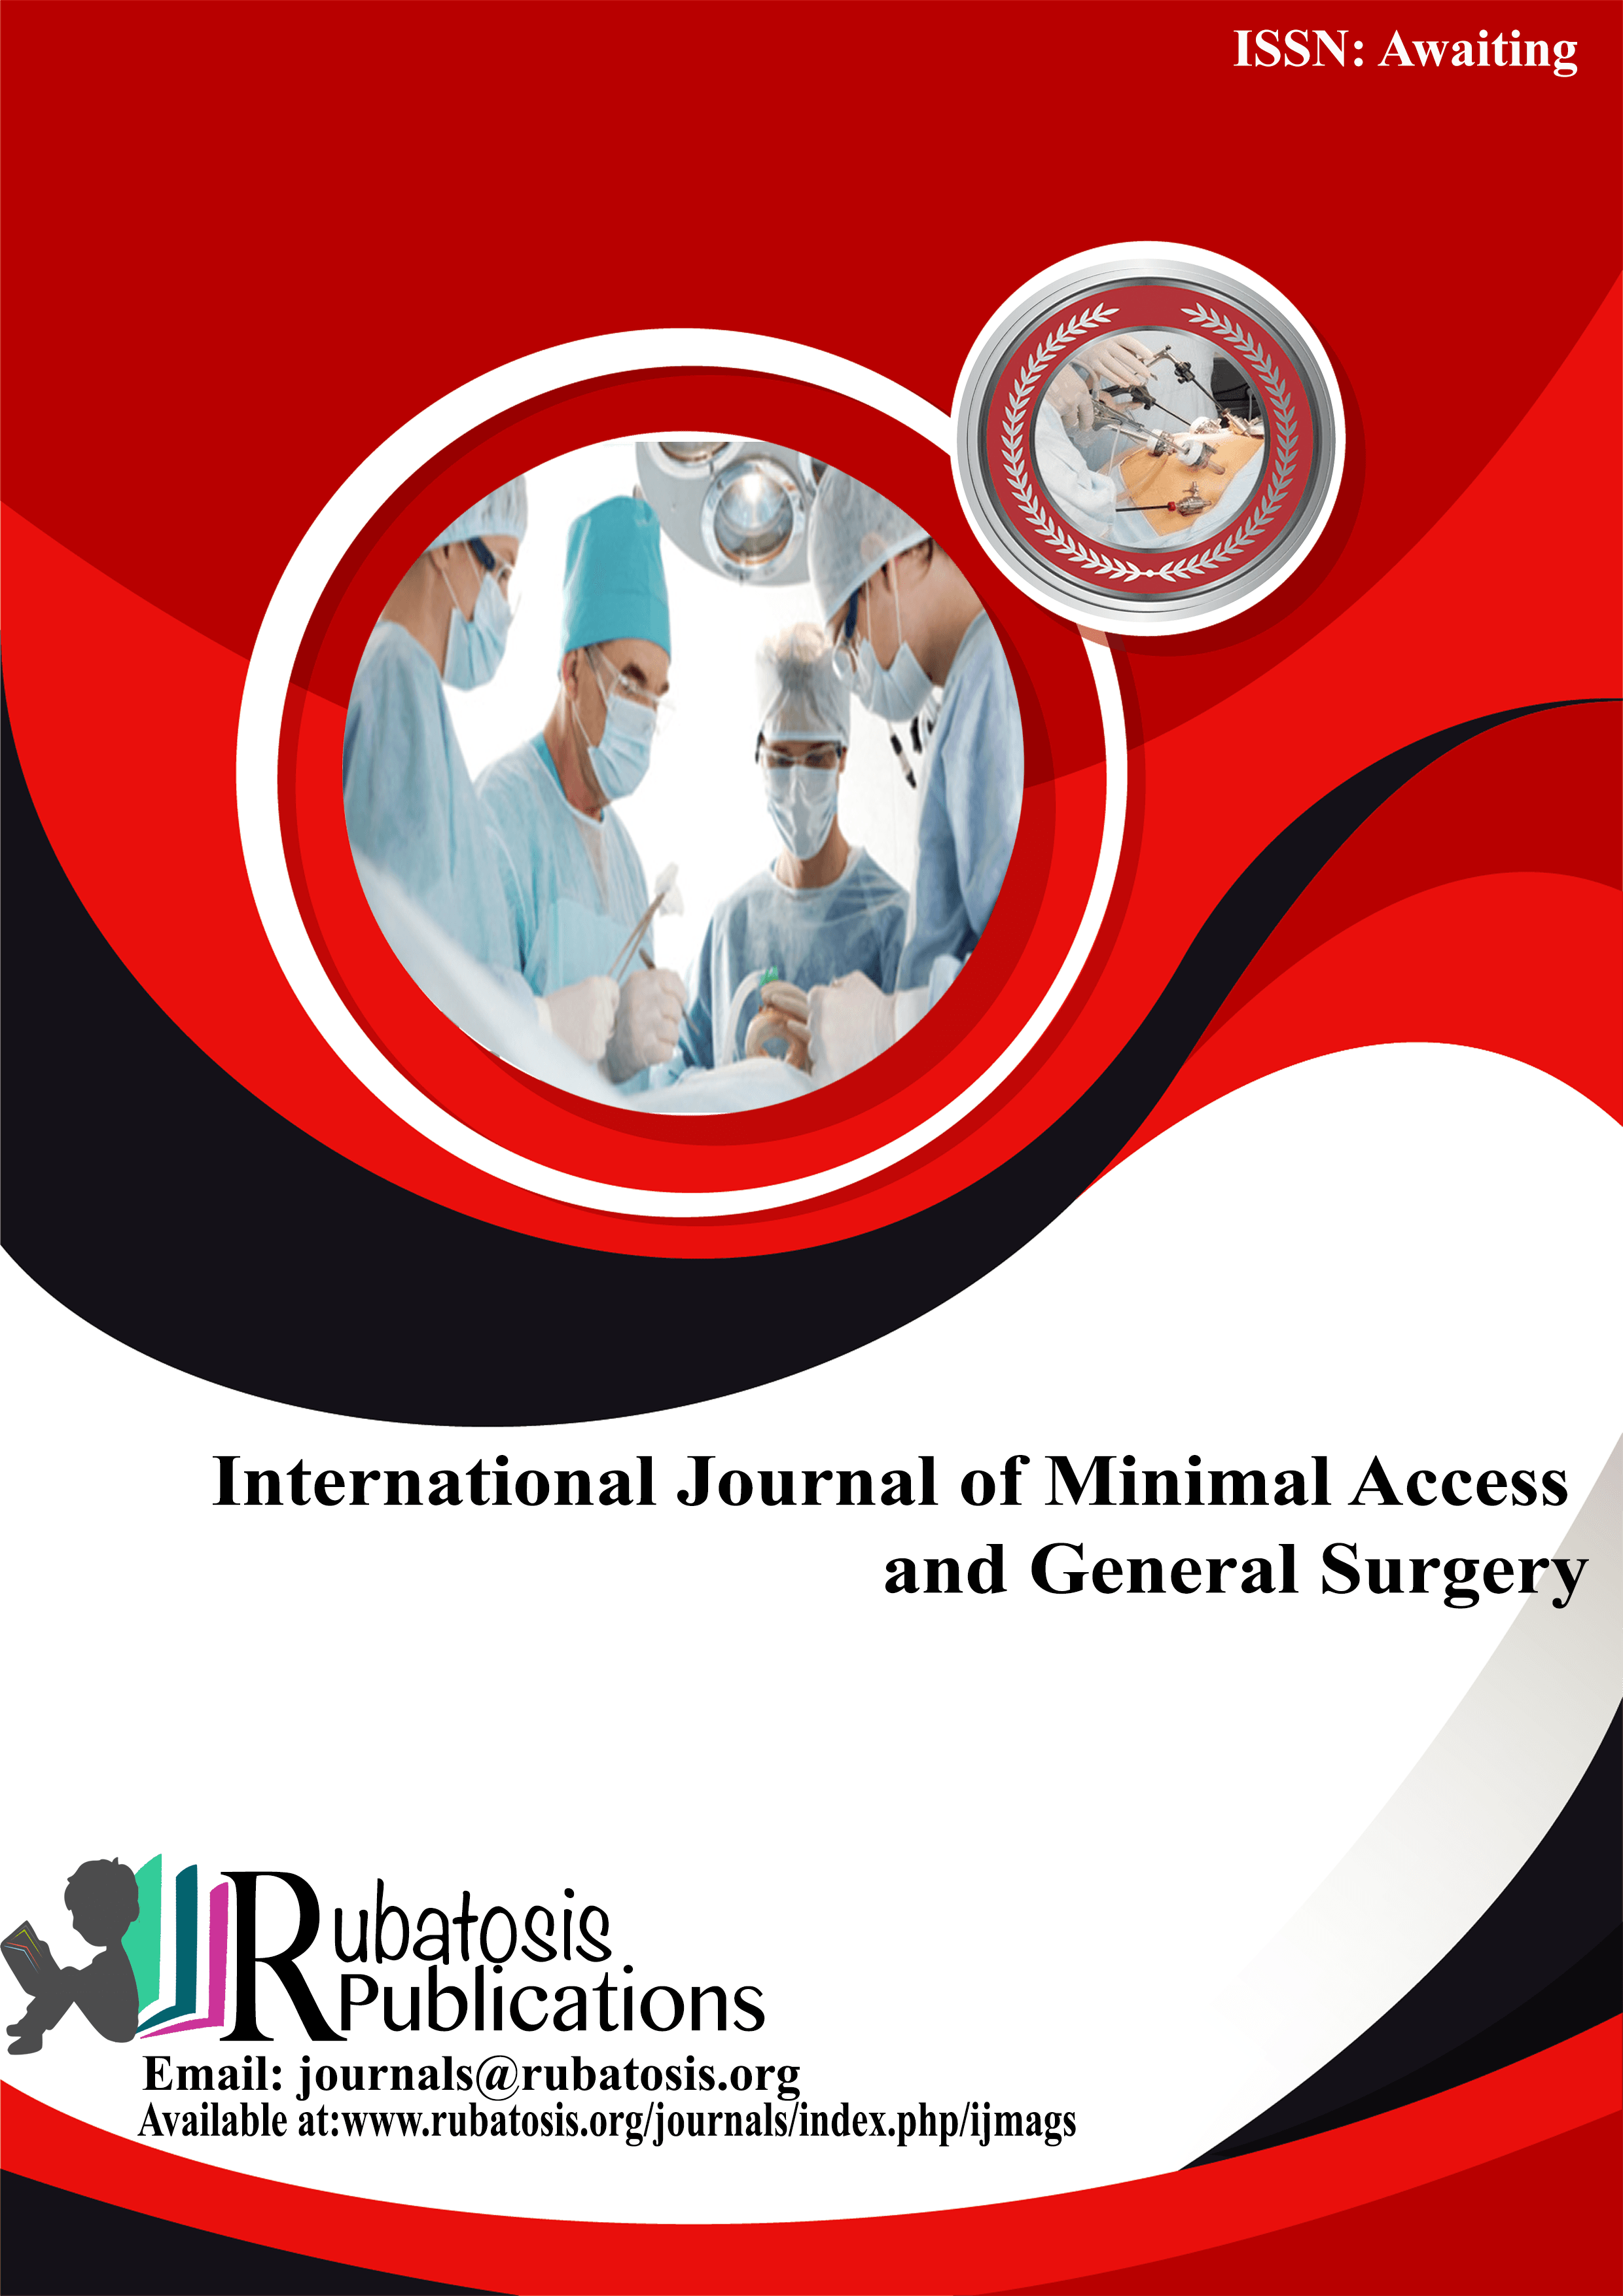 International Journal of Minimal Access and General Surgery